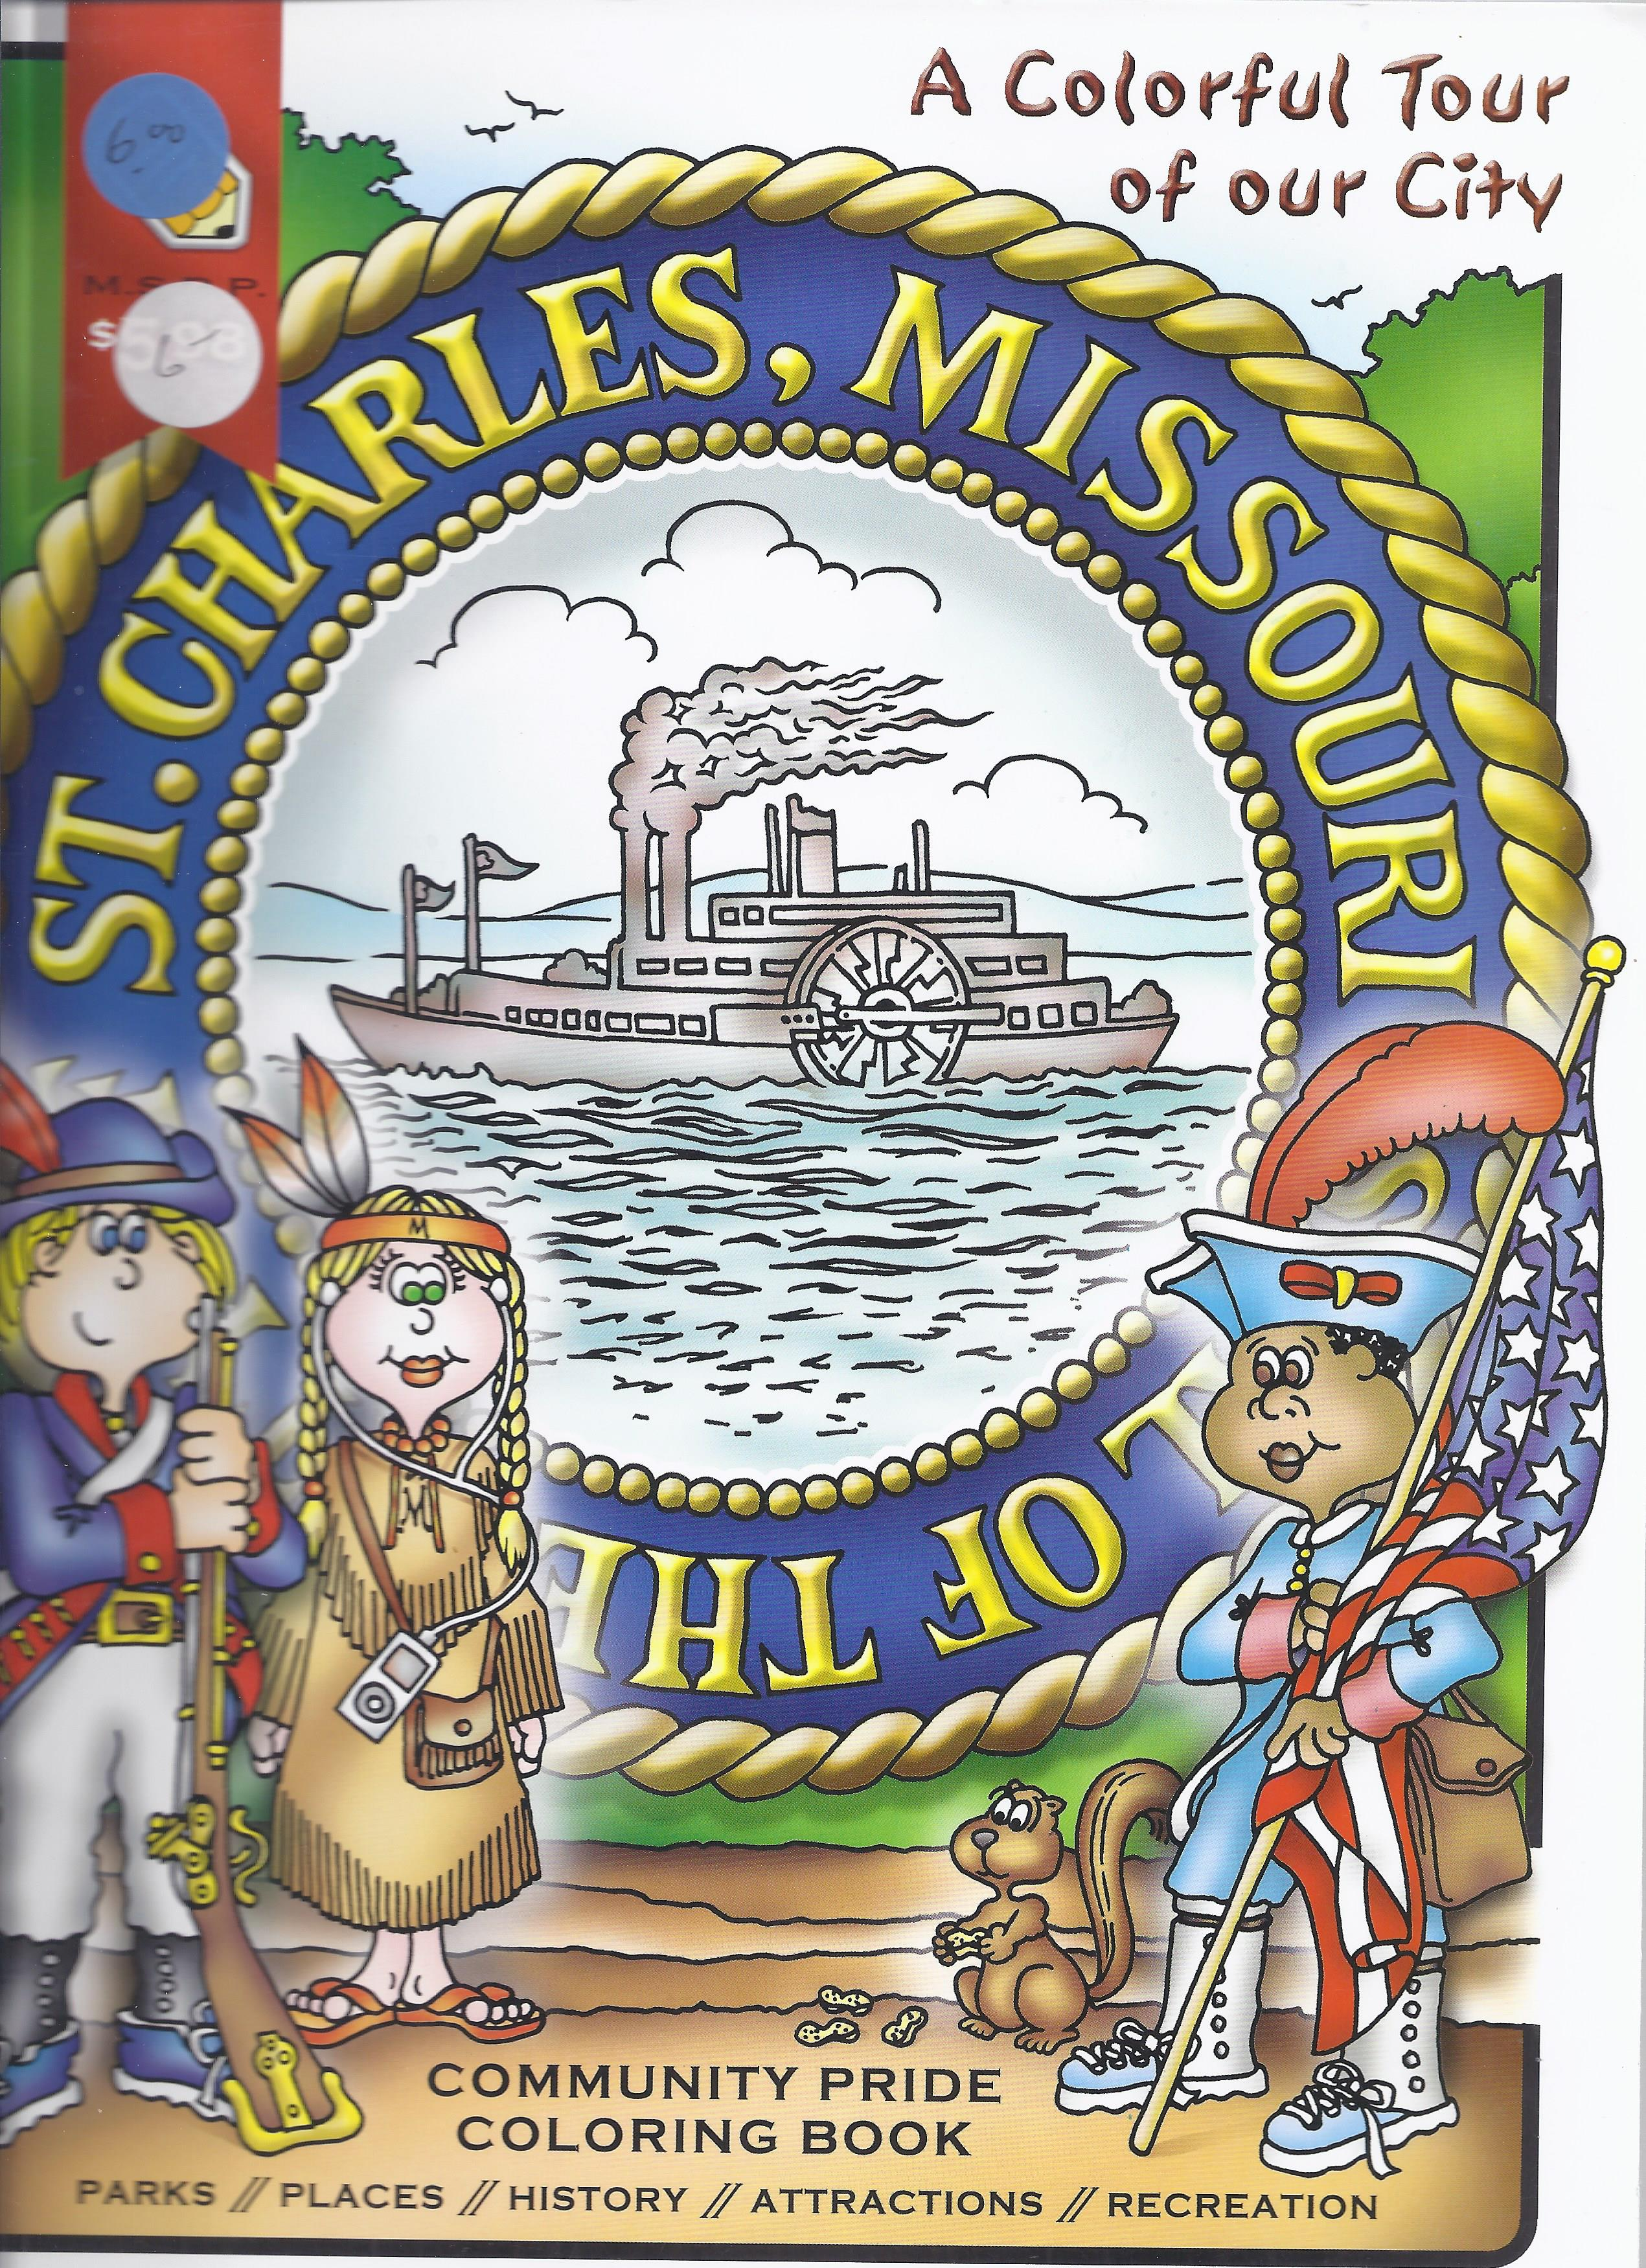 St. Charles, MO Coloring Book